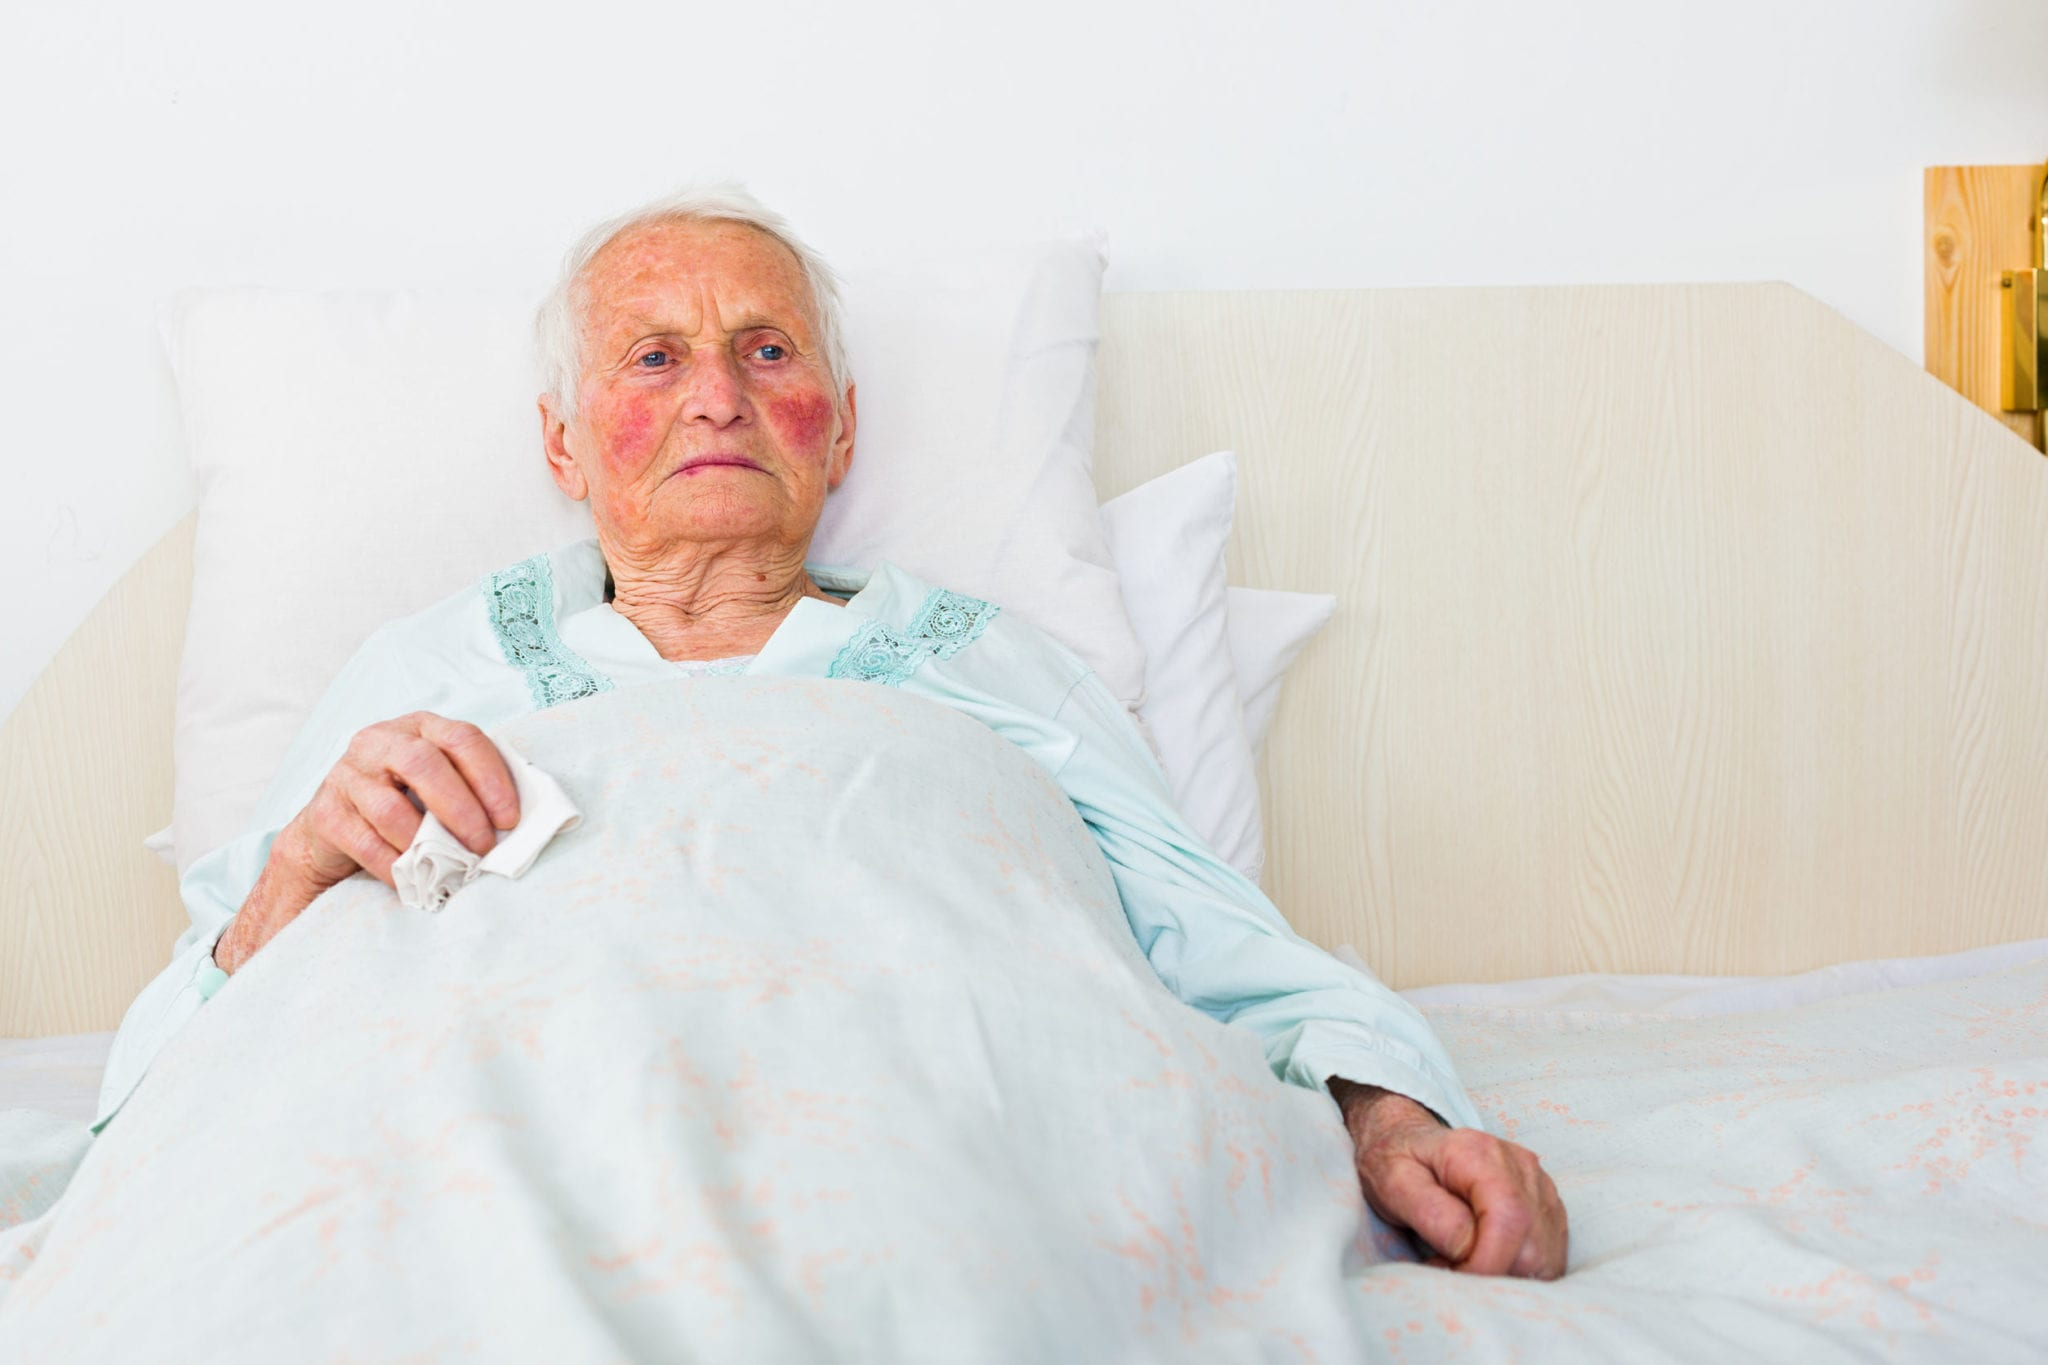 Suspect Nursing Home Abuse? What Texans Can Do